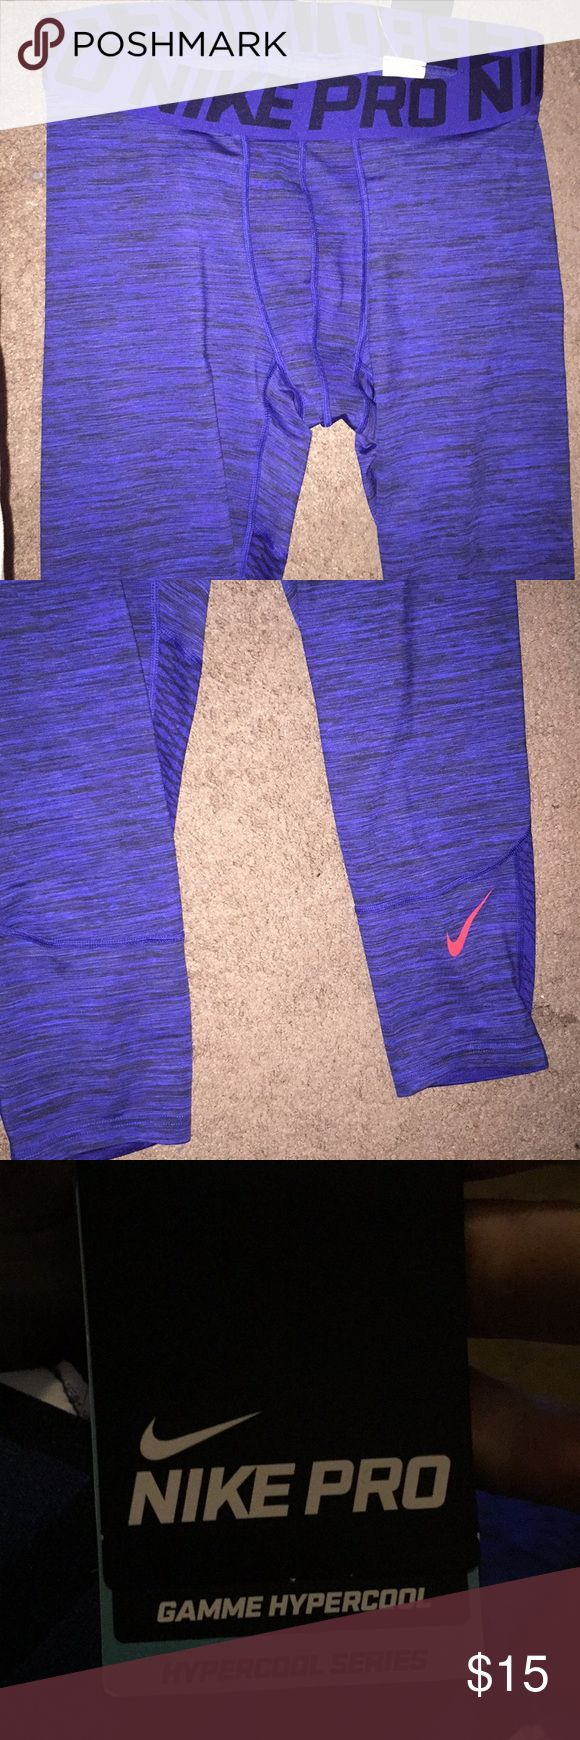 Men's workout pants Great workout pants by Nike pro. Dark blue with orange swoosh. 3/4 length.   See stock photo for best color representation. Flash creates a lighter color. Nike Pants Sweatpants & Joggers